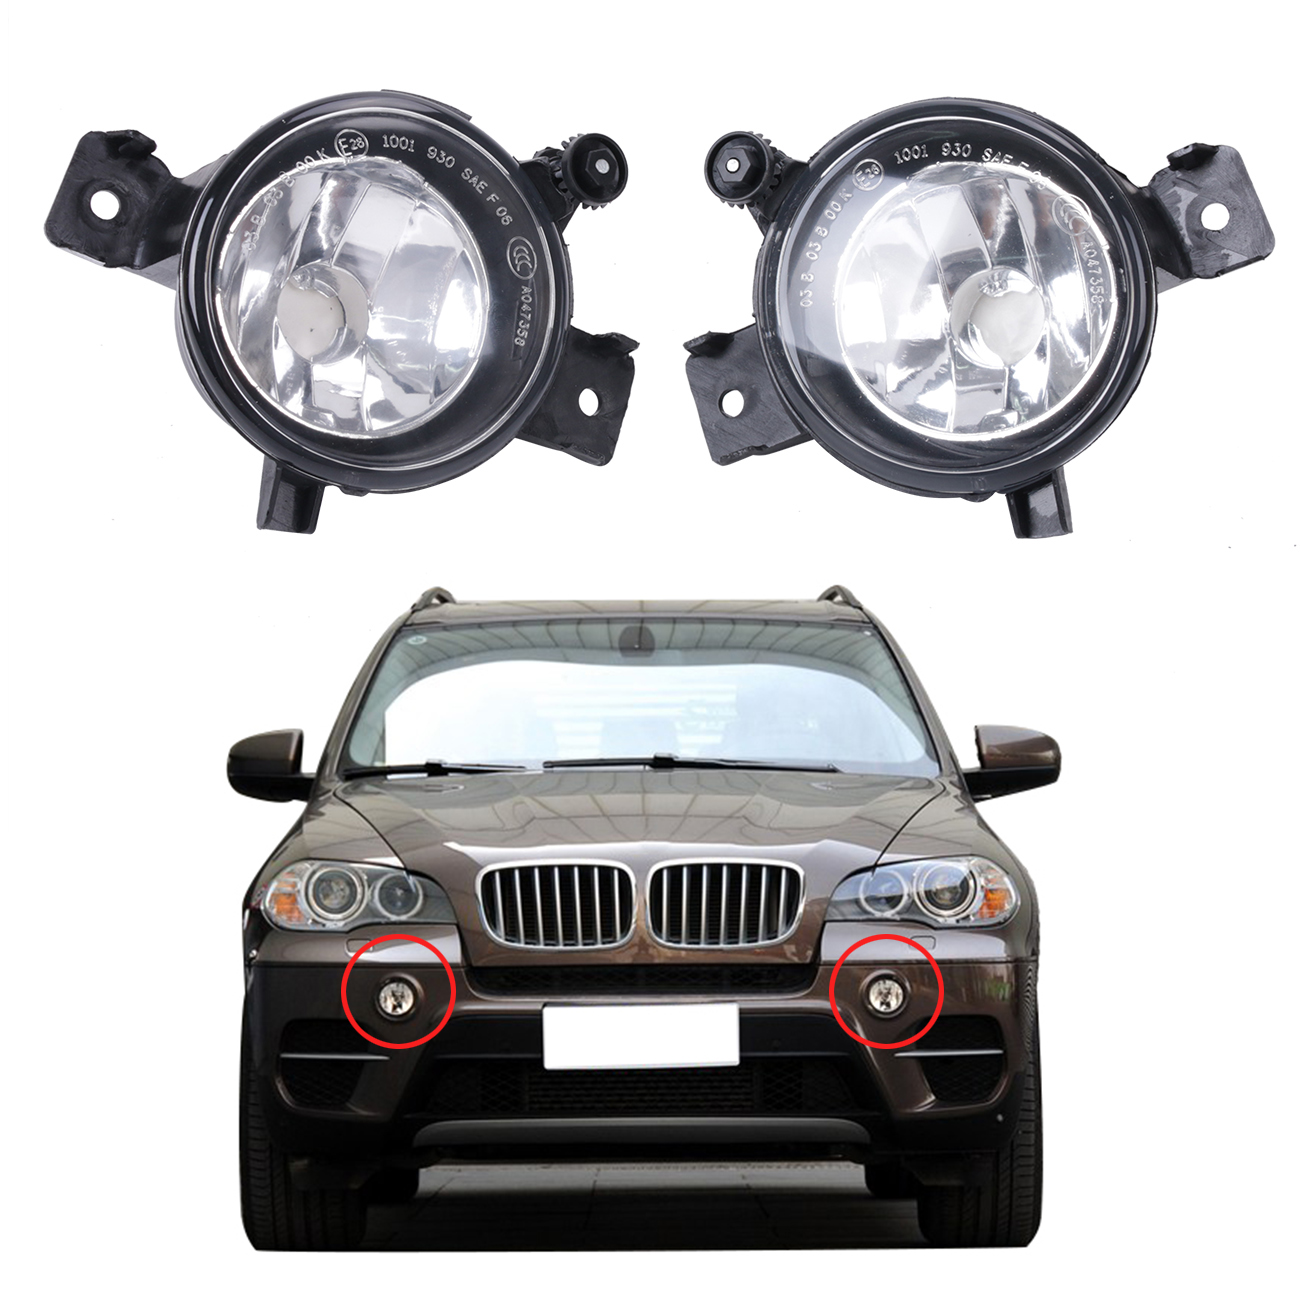 Left / Right Front Bumper Fog Light Clear Driving Lamps Foglamp Housing For BMW E70 X5 2011 2012 2013 Car Lighting #W086 2 pcs set car styling front bumper light fog lamps for toyota venza 2009 10 11 12 13 14 81210 06052 left right